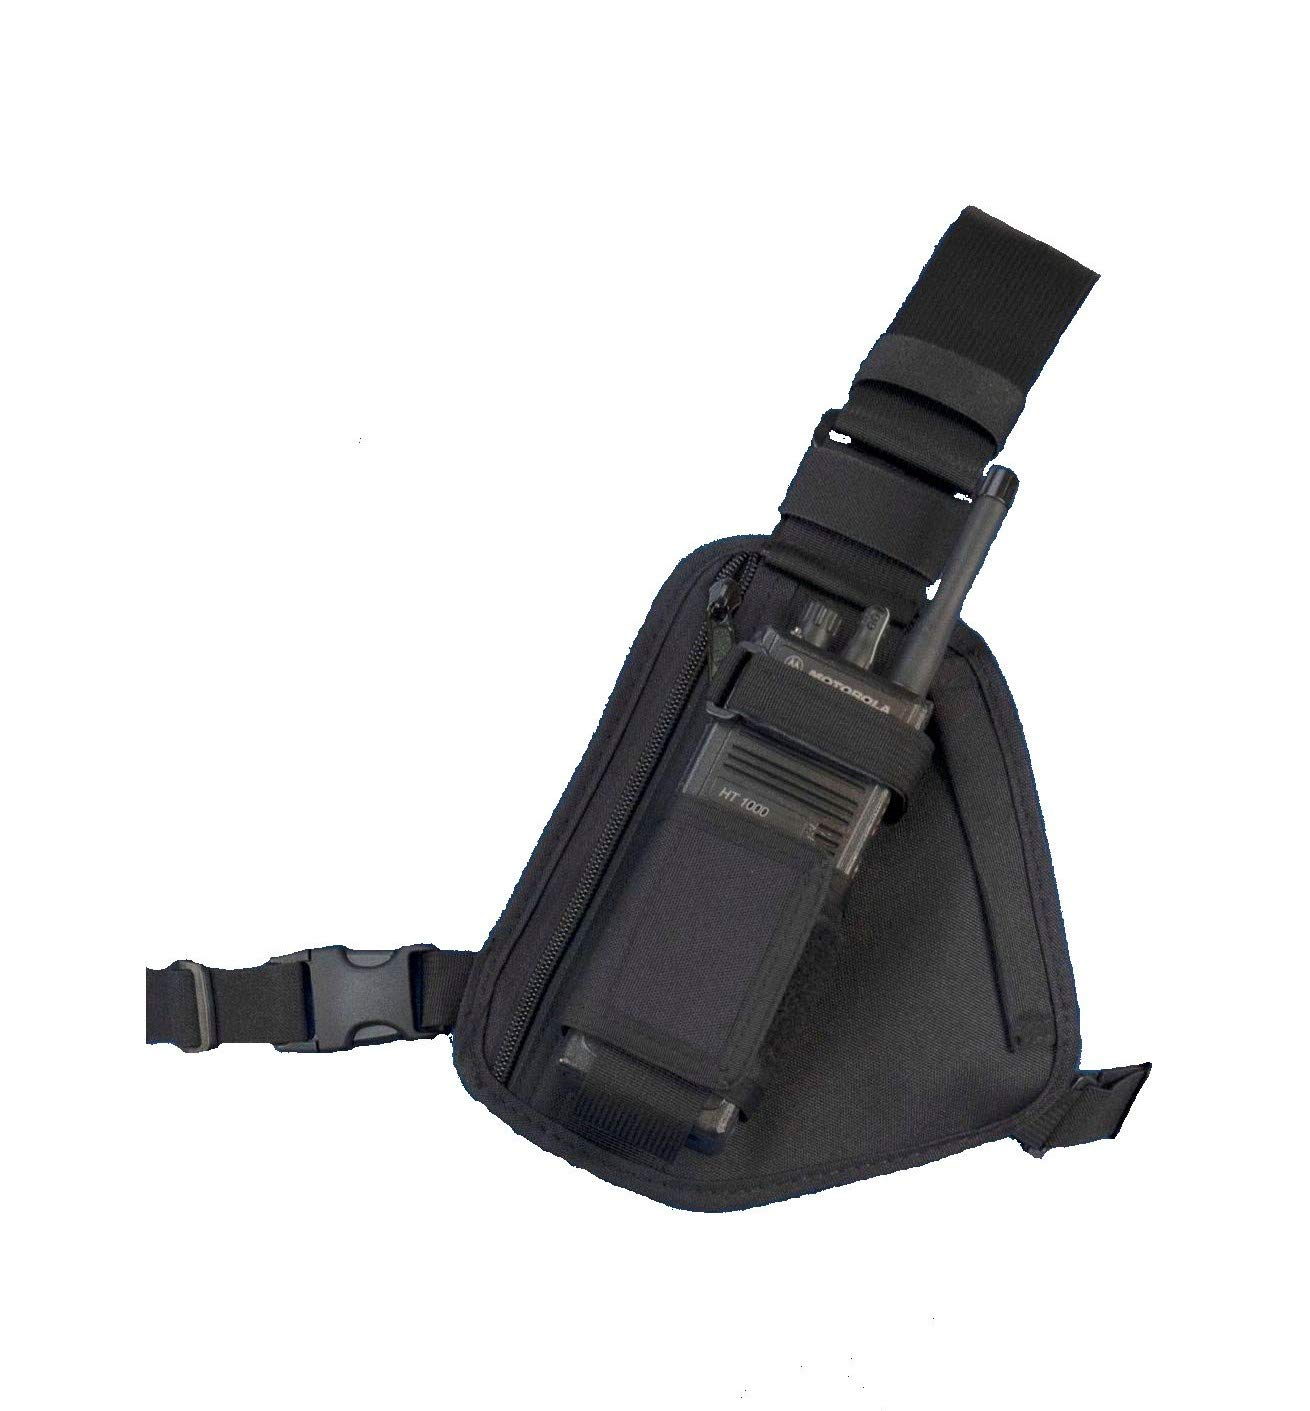 Radio Harness Chest Harness by HOLSTER GUY